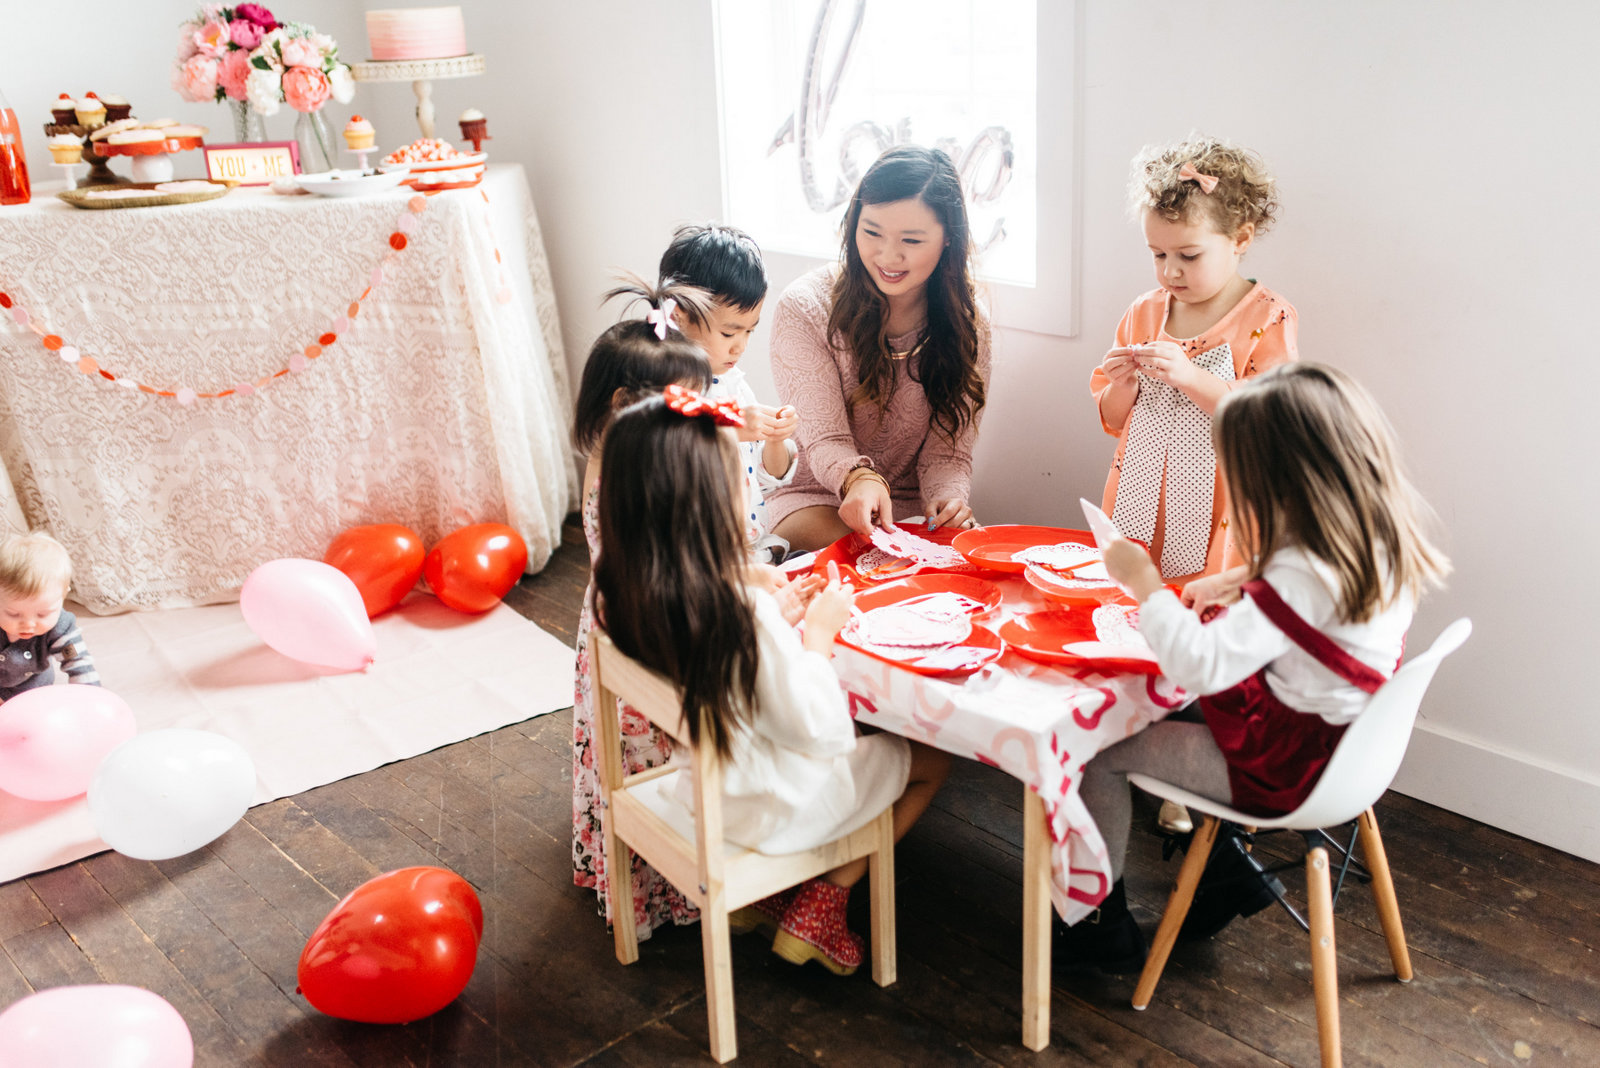 Family Valentine's Party Ideas